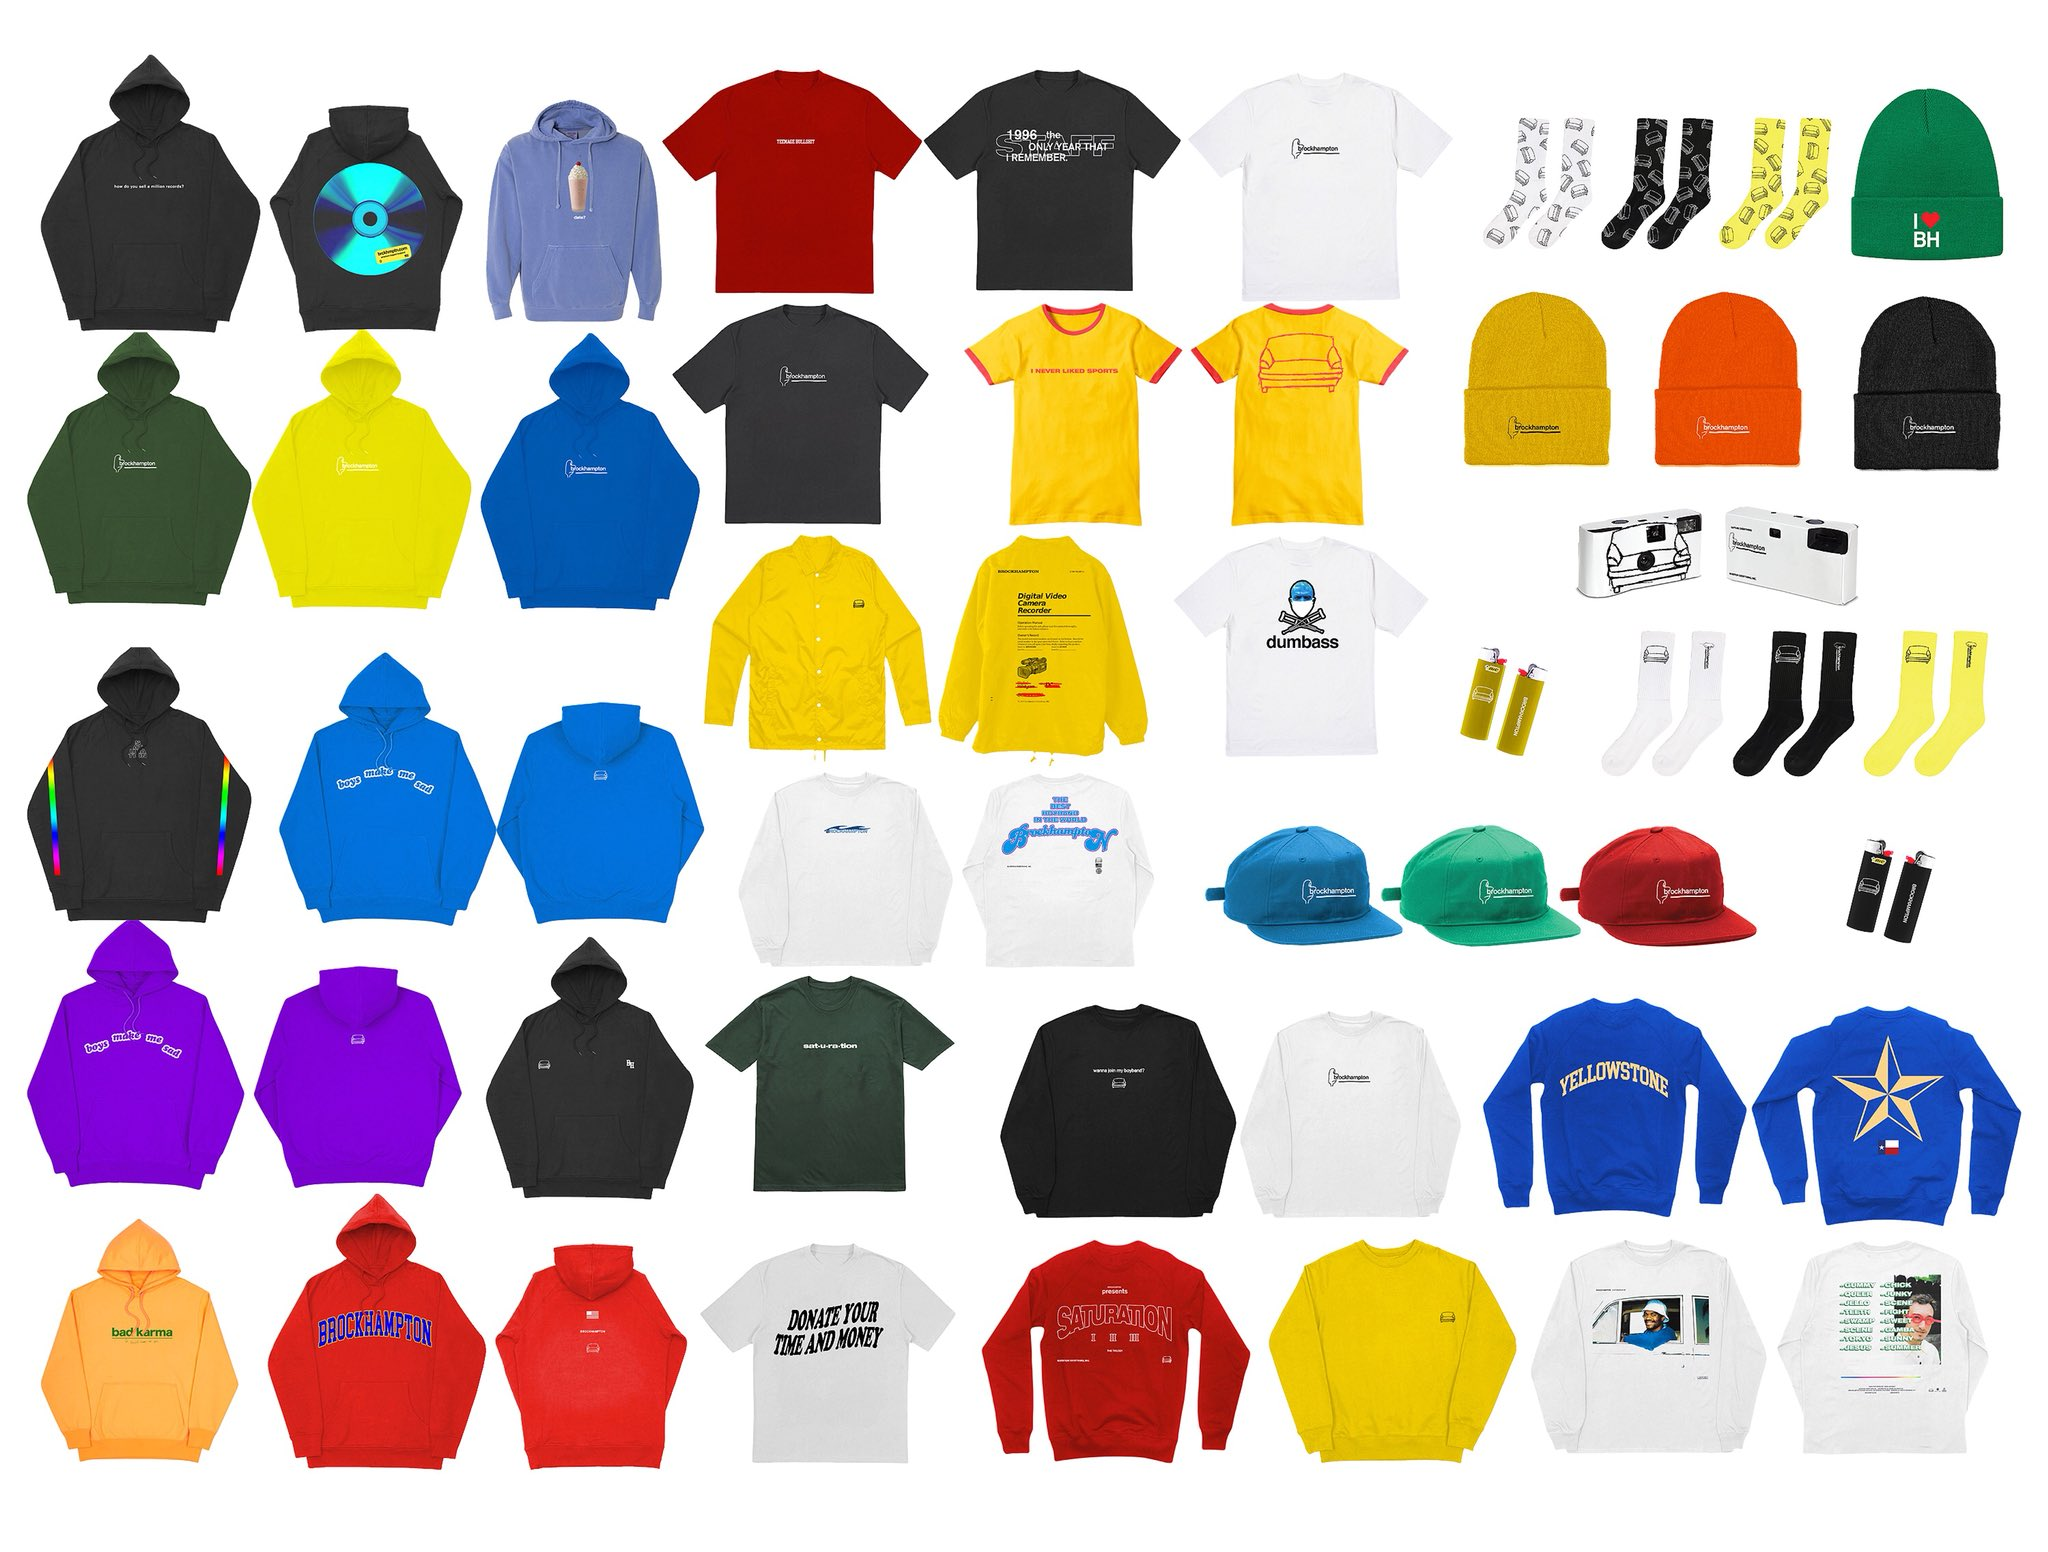 MERCH  https://t.co/hW7QOrRGze https://t.co/zUnBVytIGj